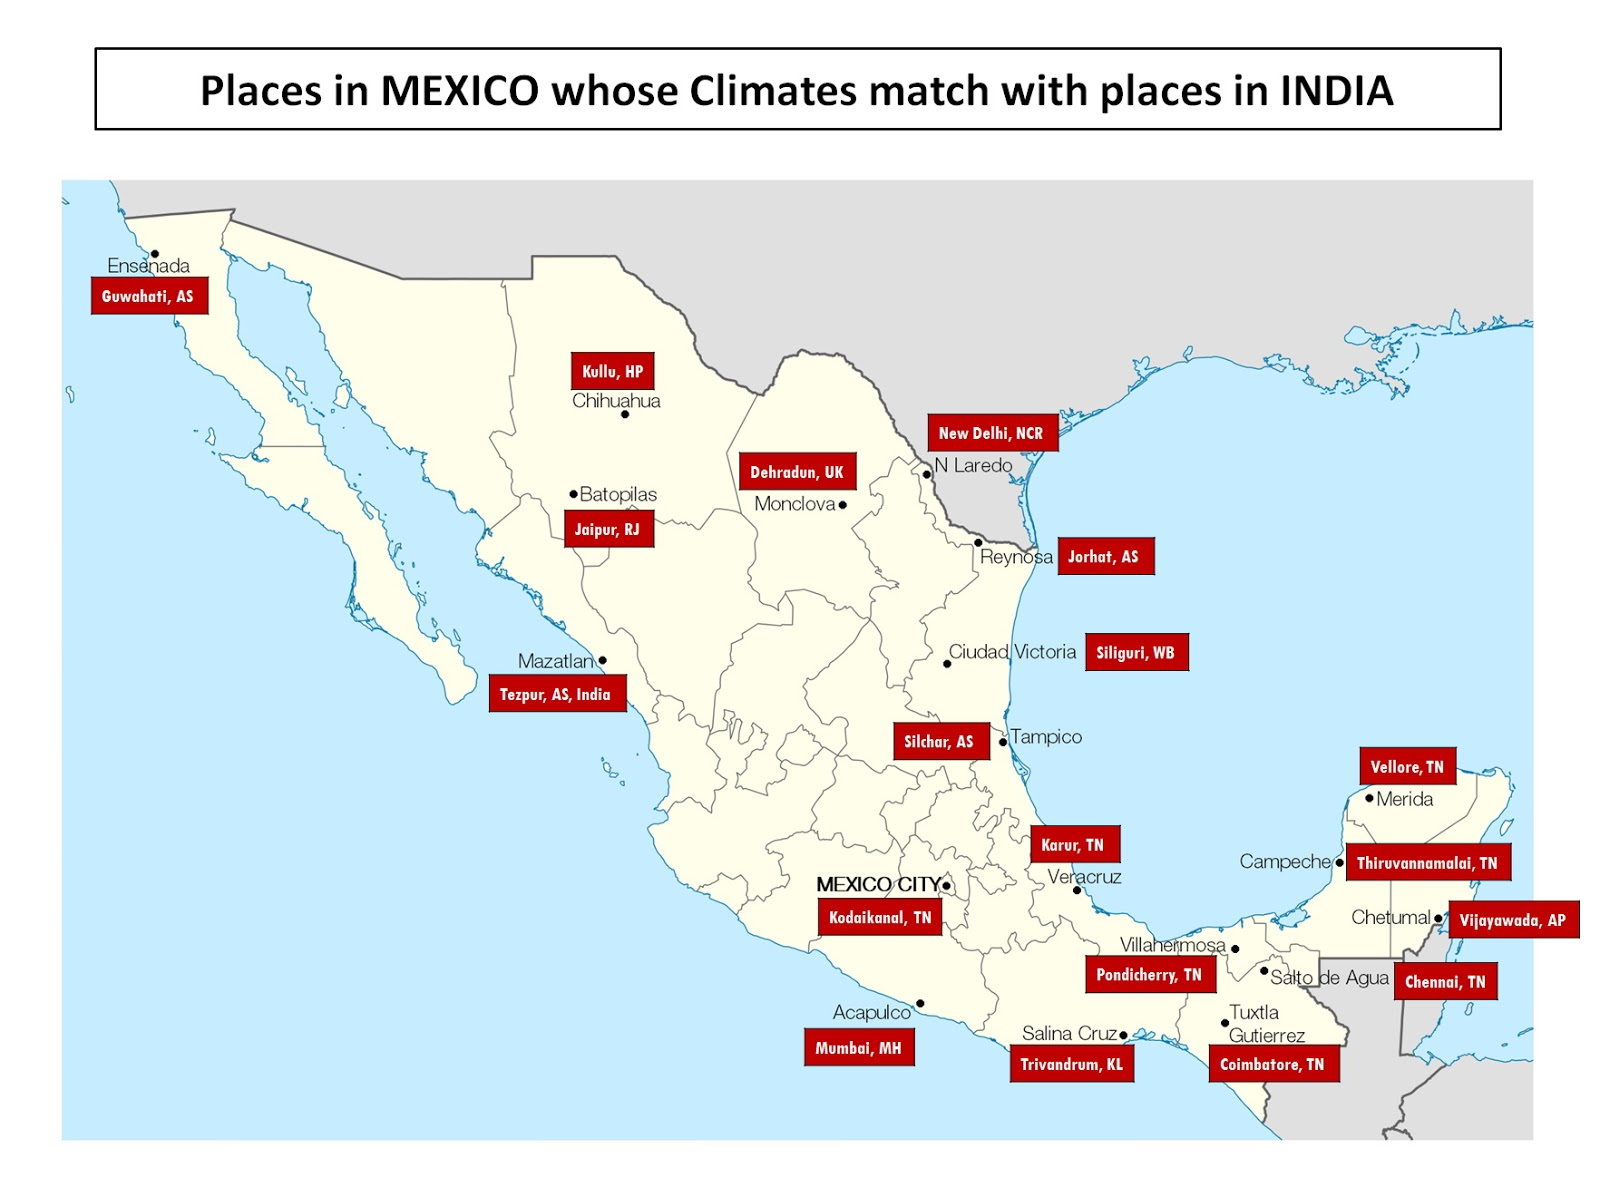 Places in Mexico whose climates match with places in India